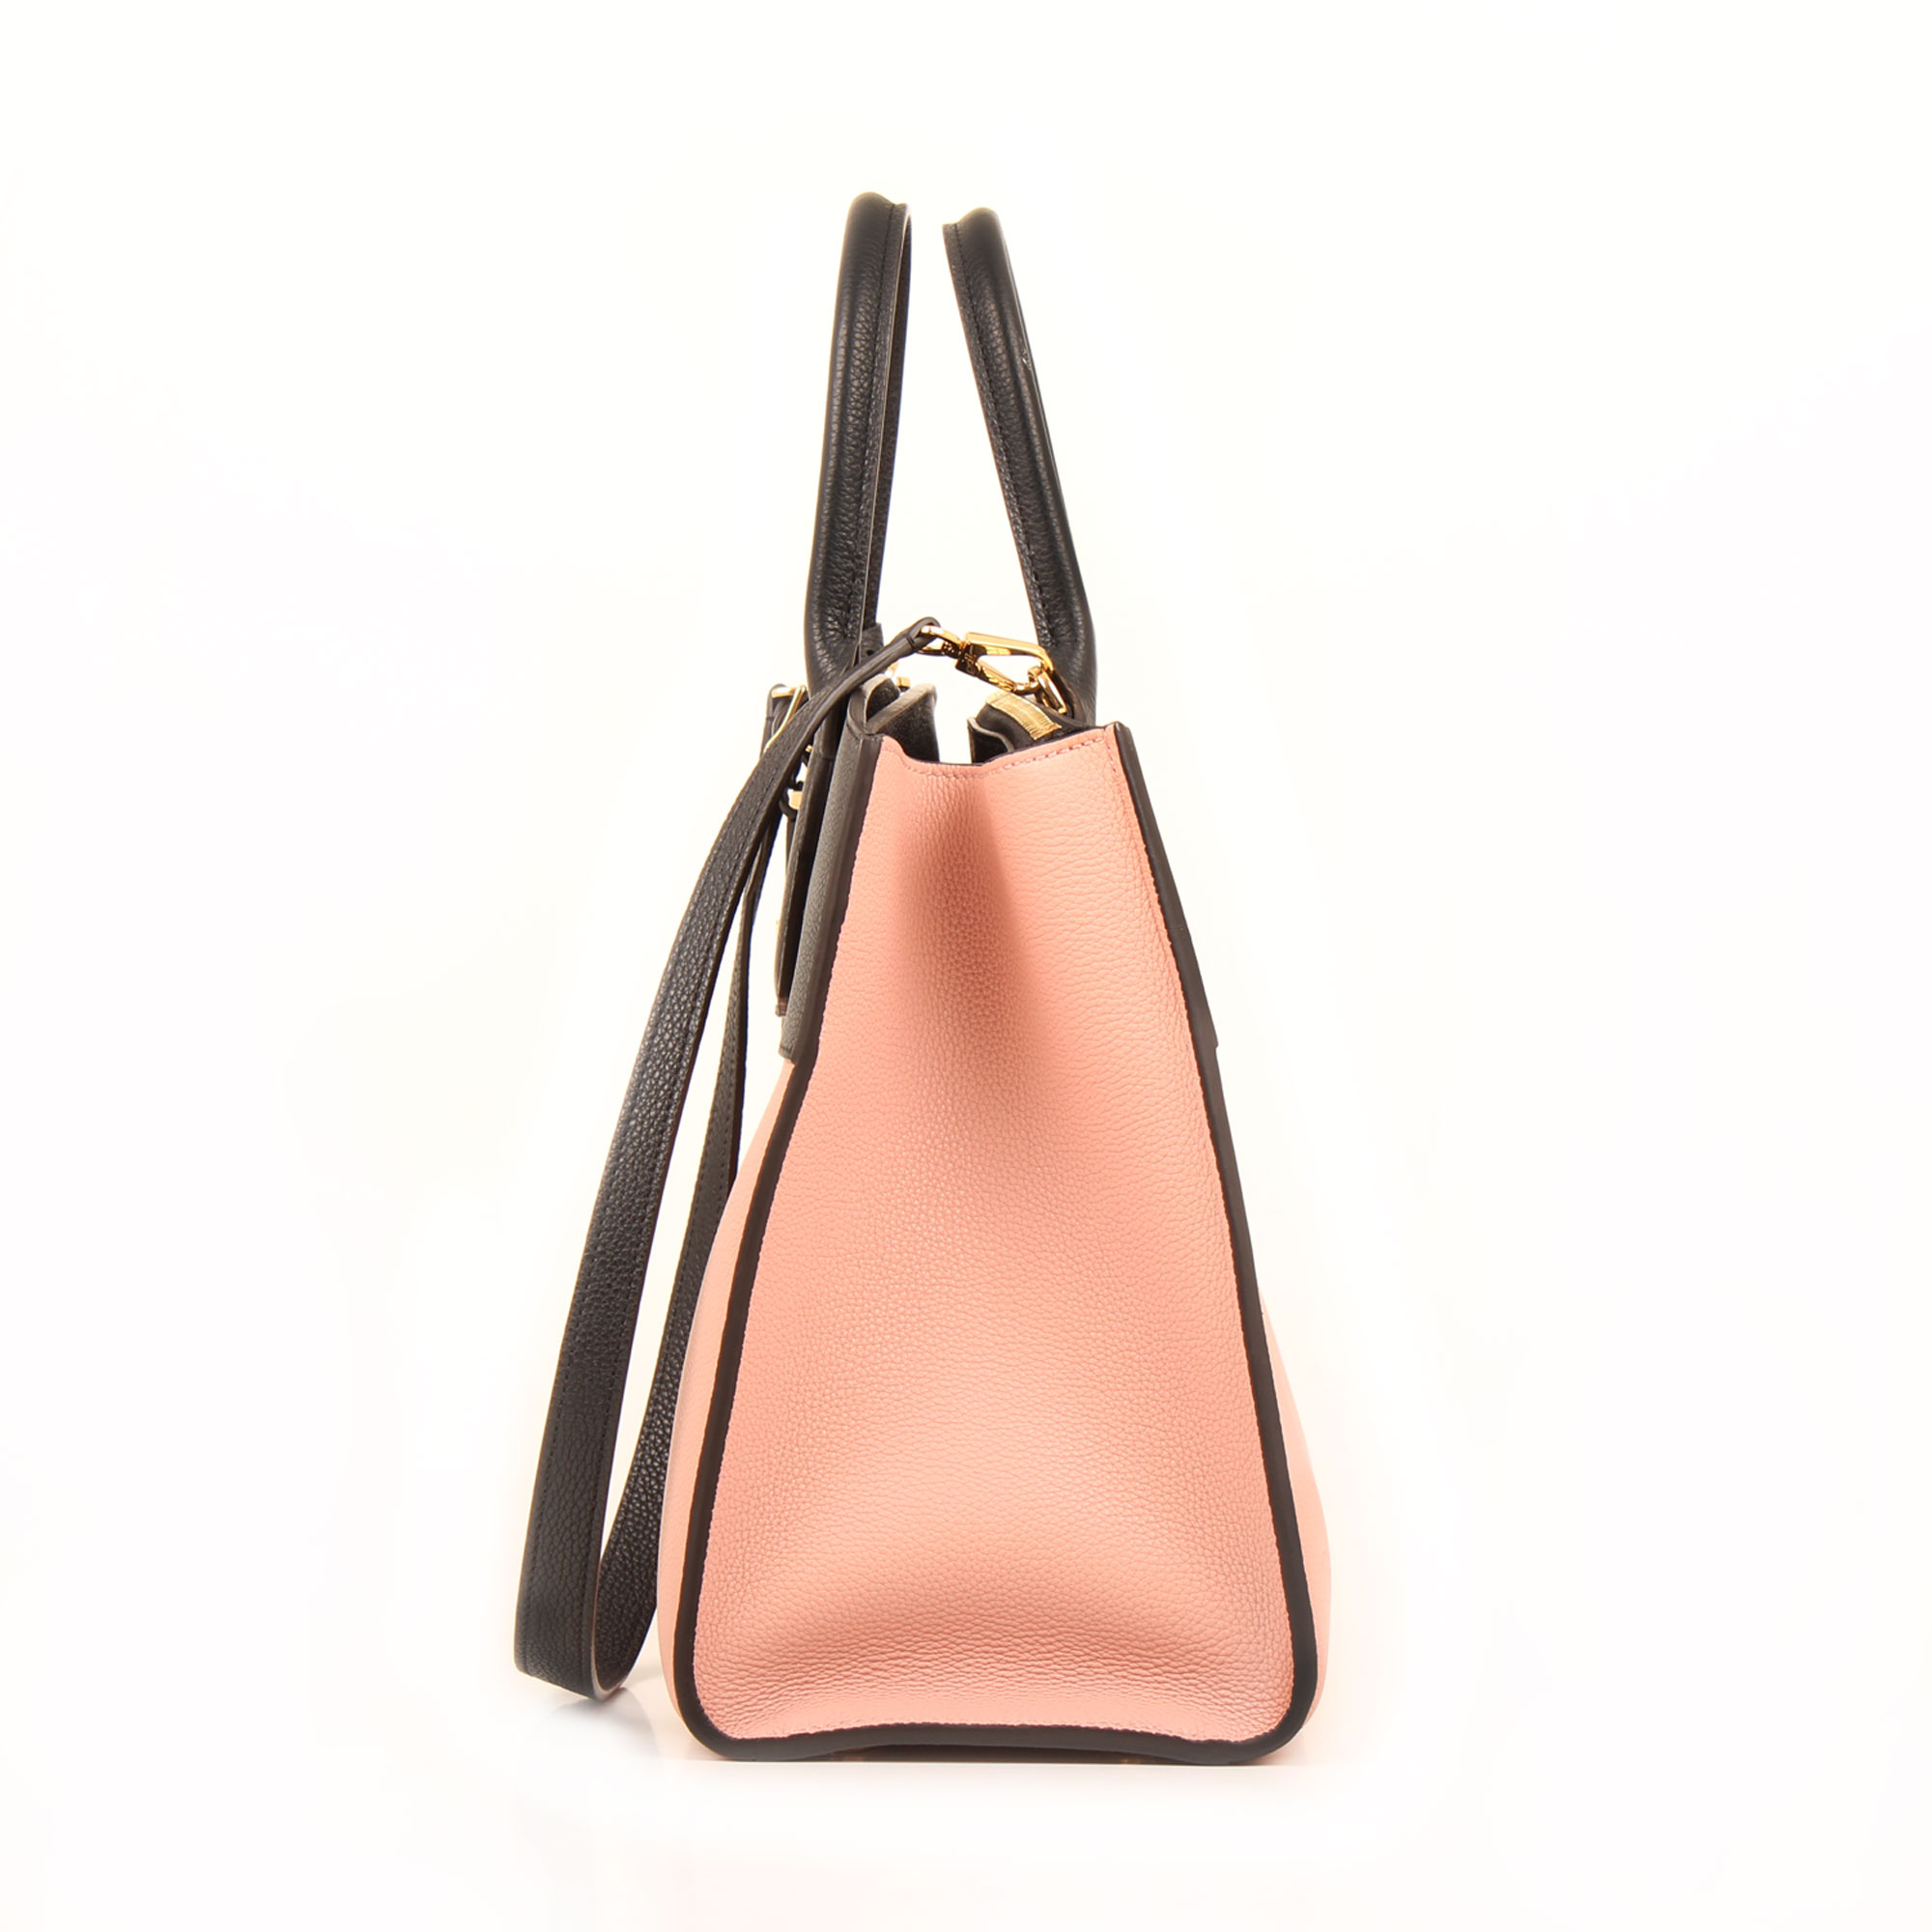 Imagen del laterla del bolso louis vuitton city steamer mm magnolia